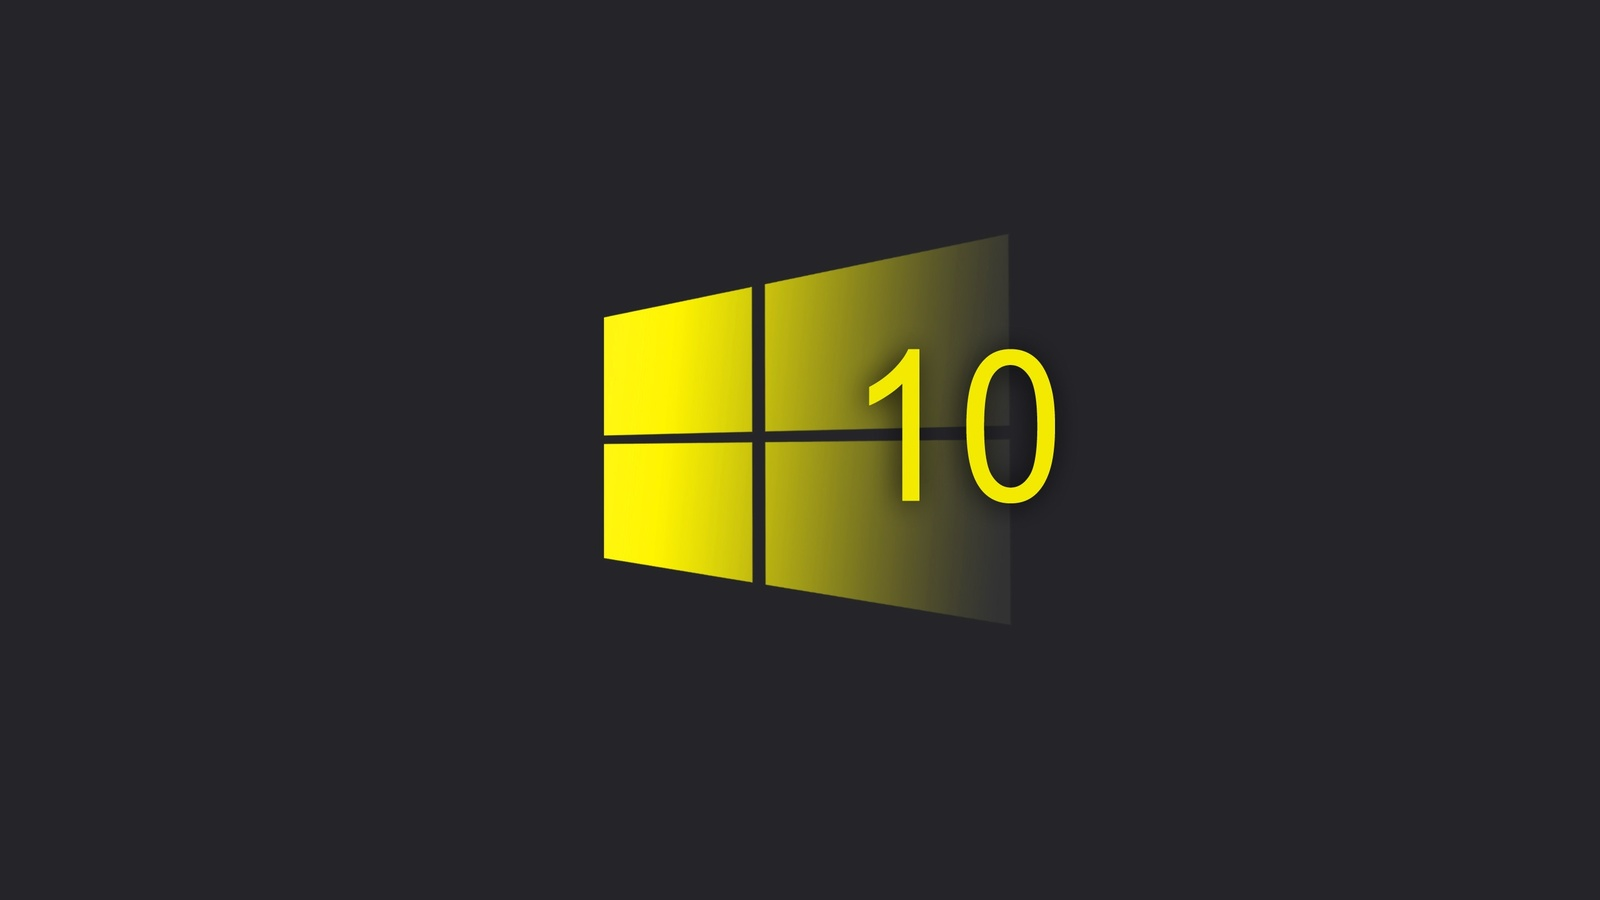 windows 10, yellow, logo, minimalism